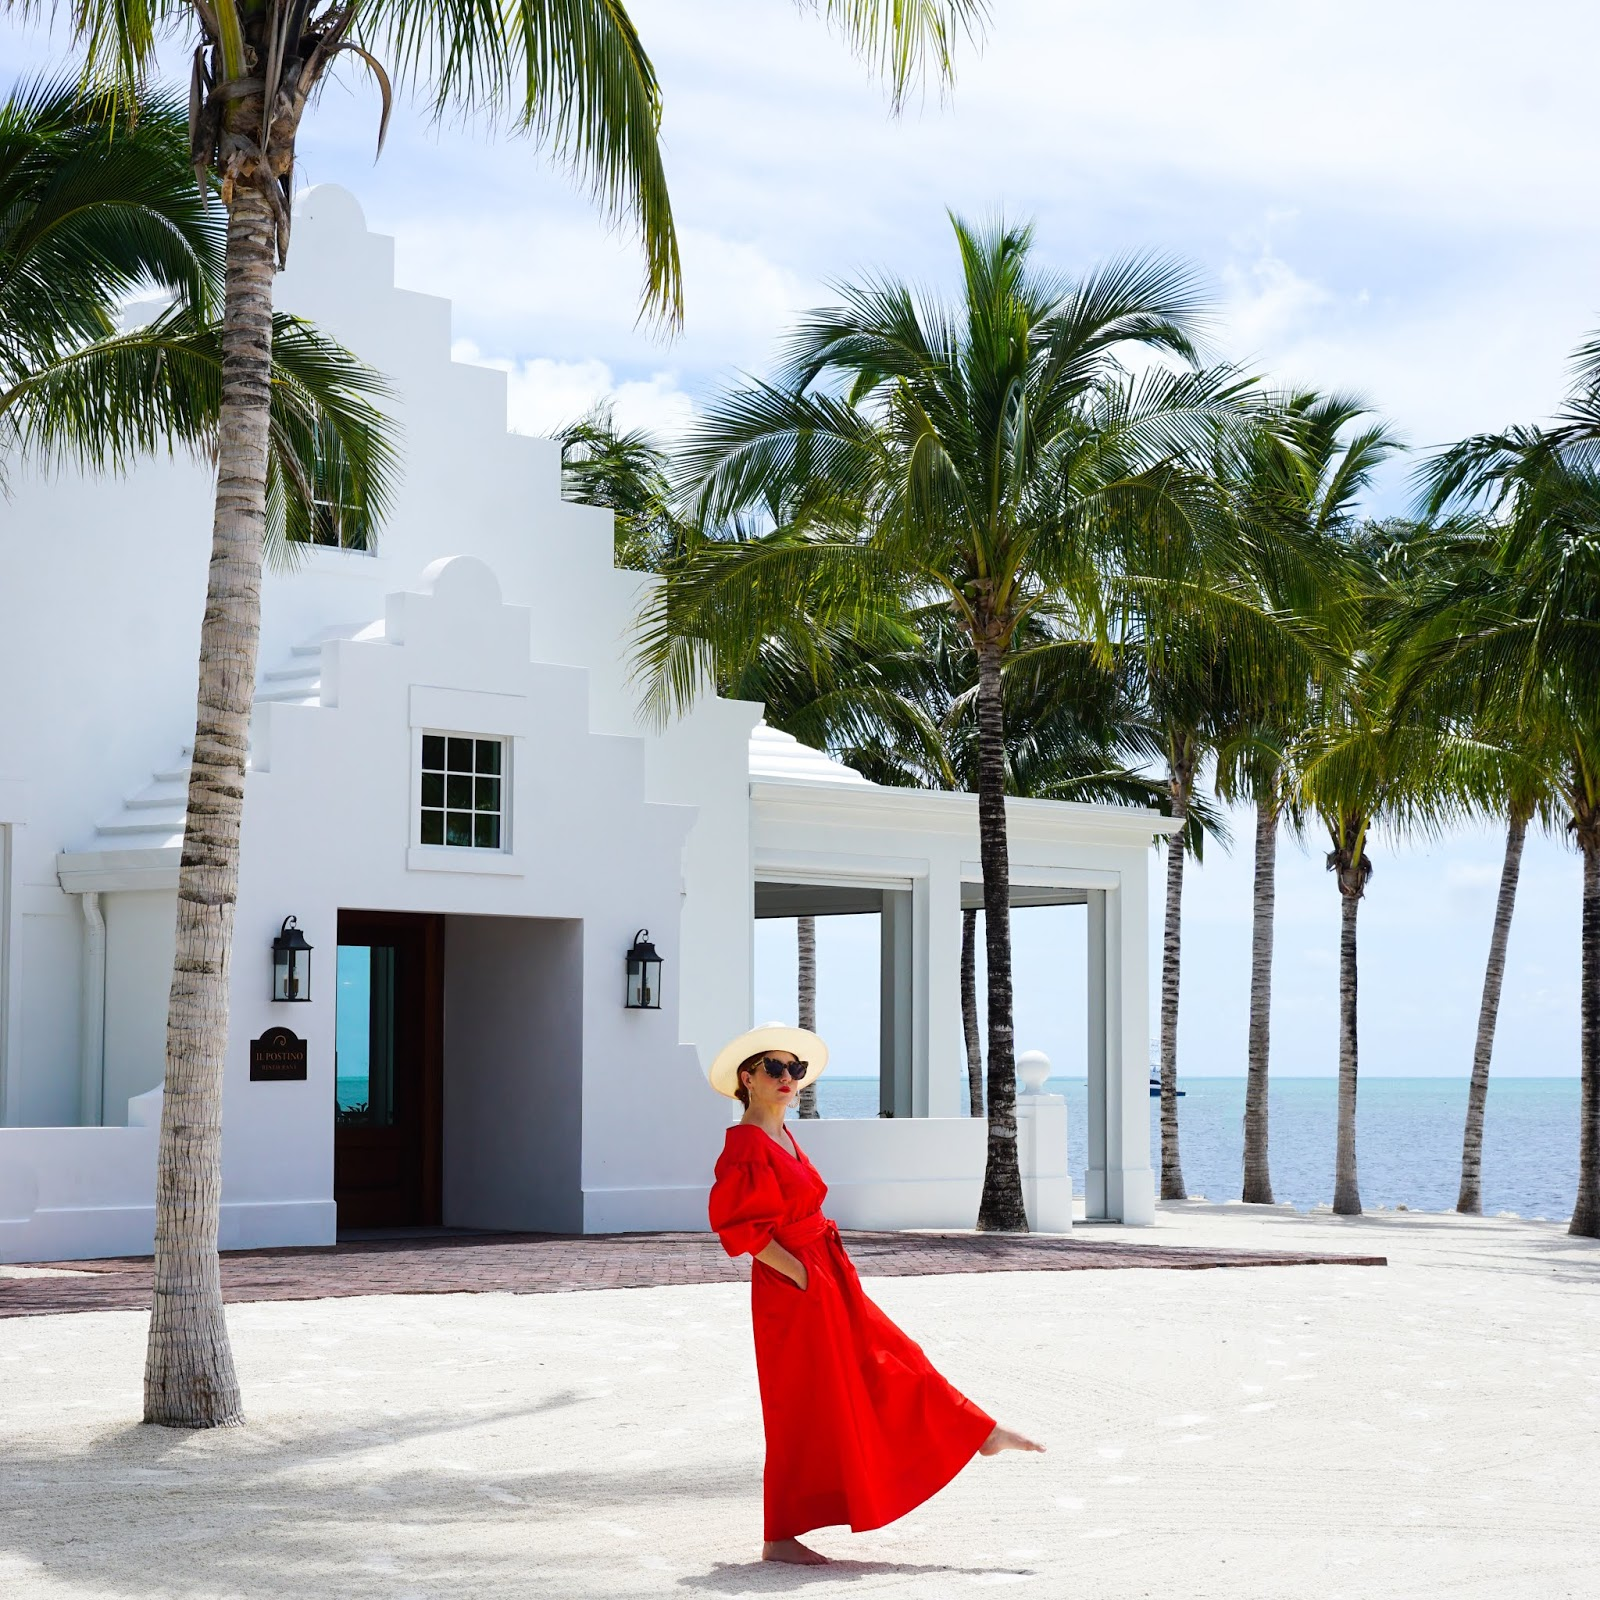 Kate spade belted midi dress, Kate spade dress, Kate spade red dress, red dresses under $200, red dresses for every season, budget friendly red dresses, red dresses for fall, red dress outfit, red dress fall, puff sleeve red dress, fall fashion under $200, budget friendly red dresses